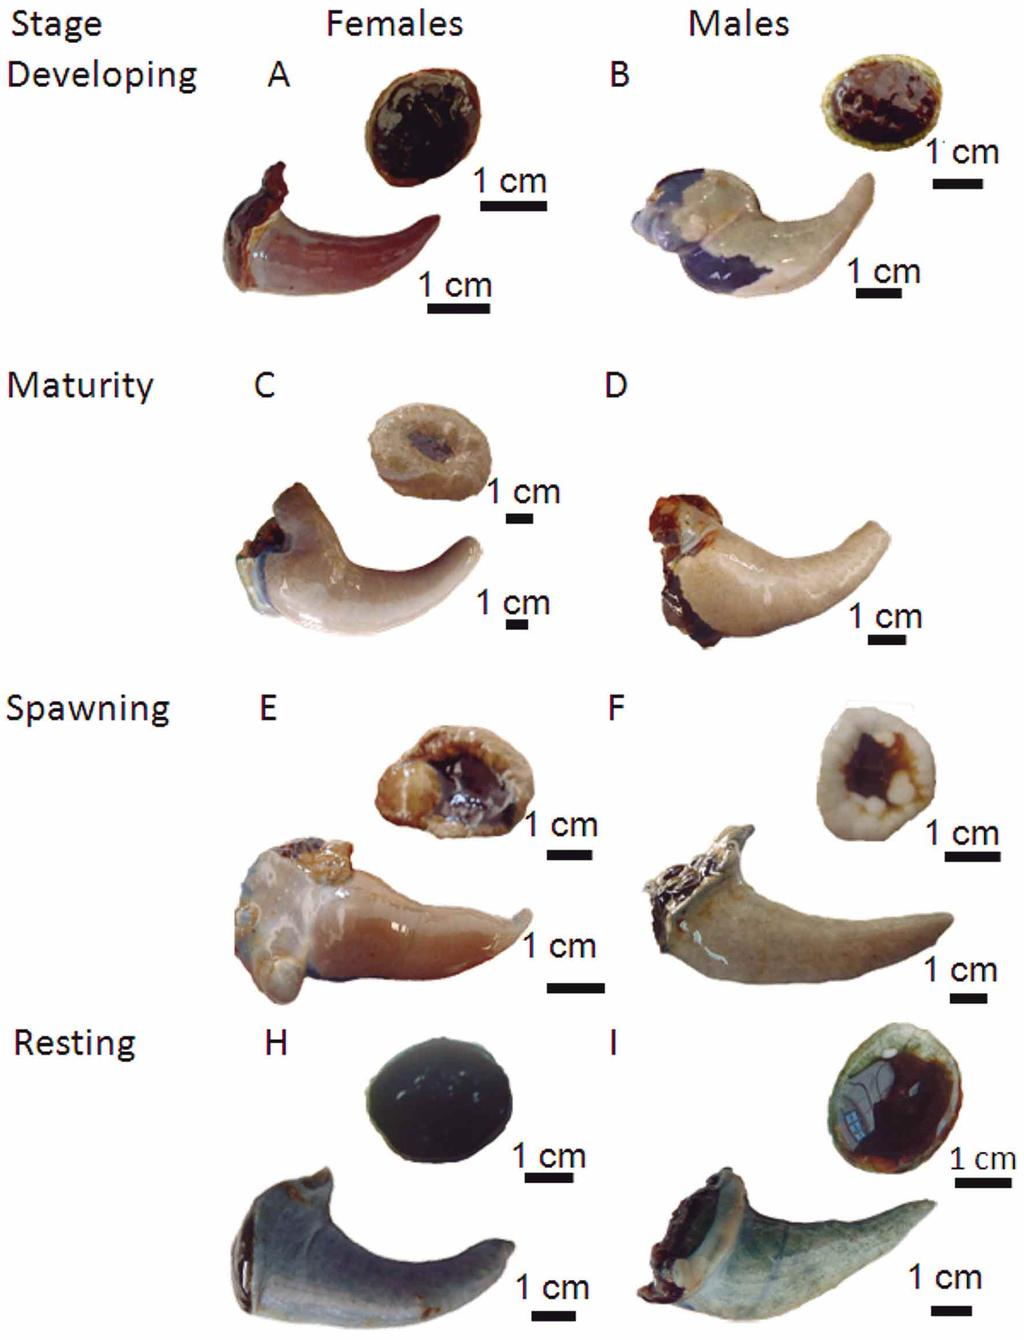 Fig. 5. Morphological features of the different stages of gonad maturation in Haliotis fulgens and H.